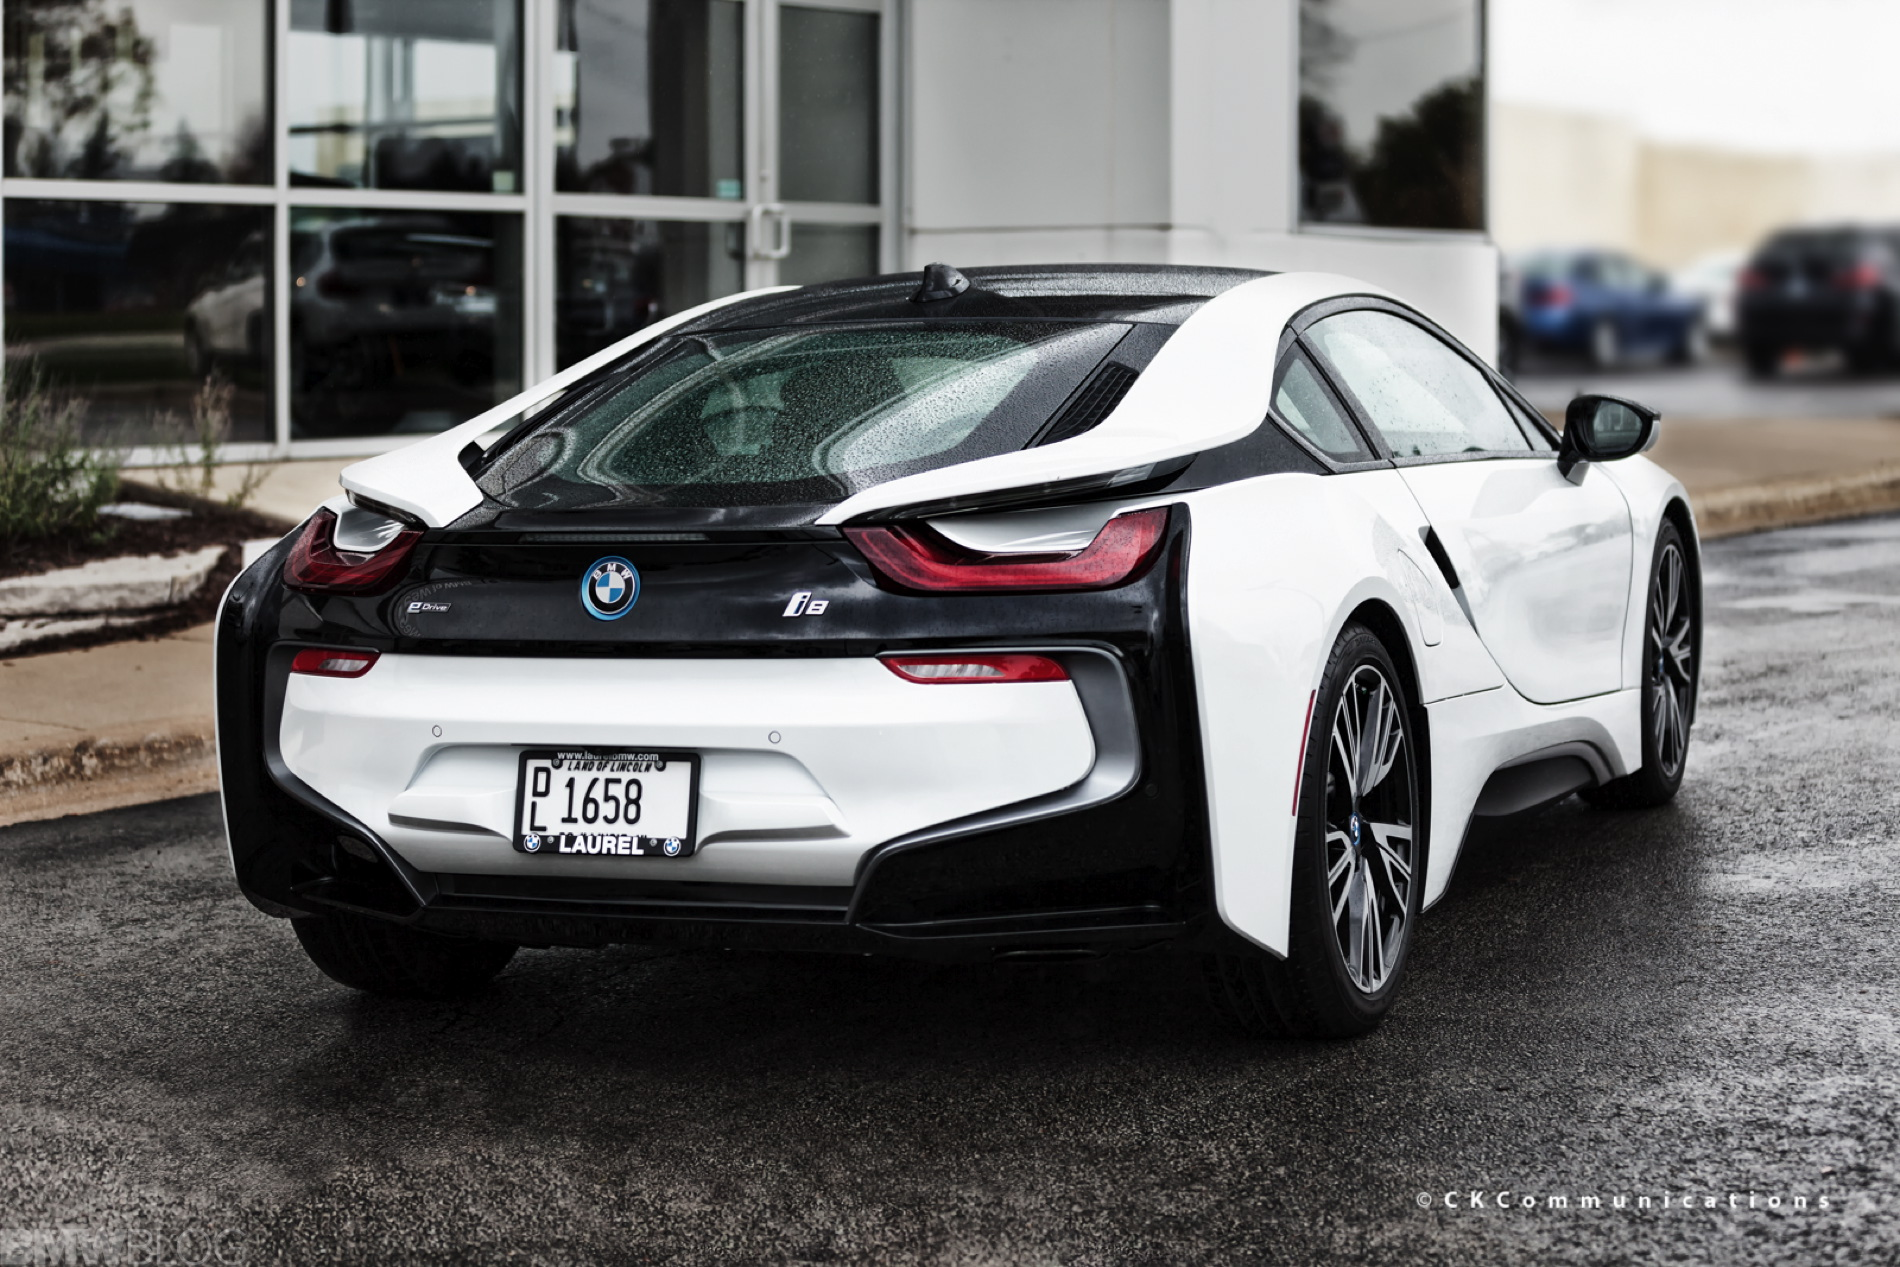 Bmw I8 Images 2017 Ckcommunications 08 750x500